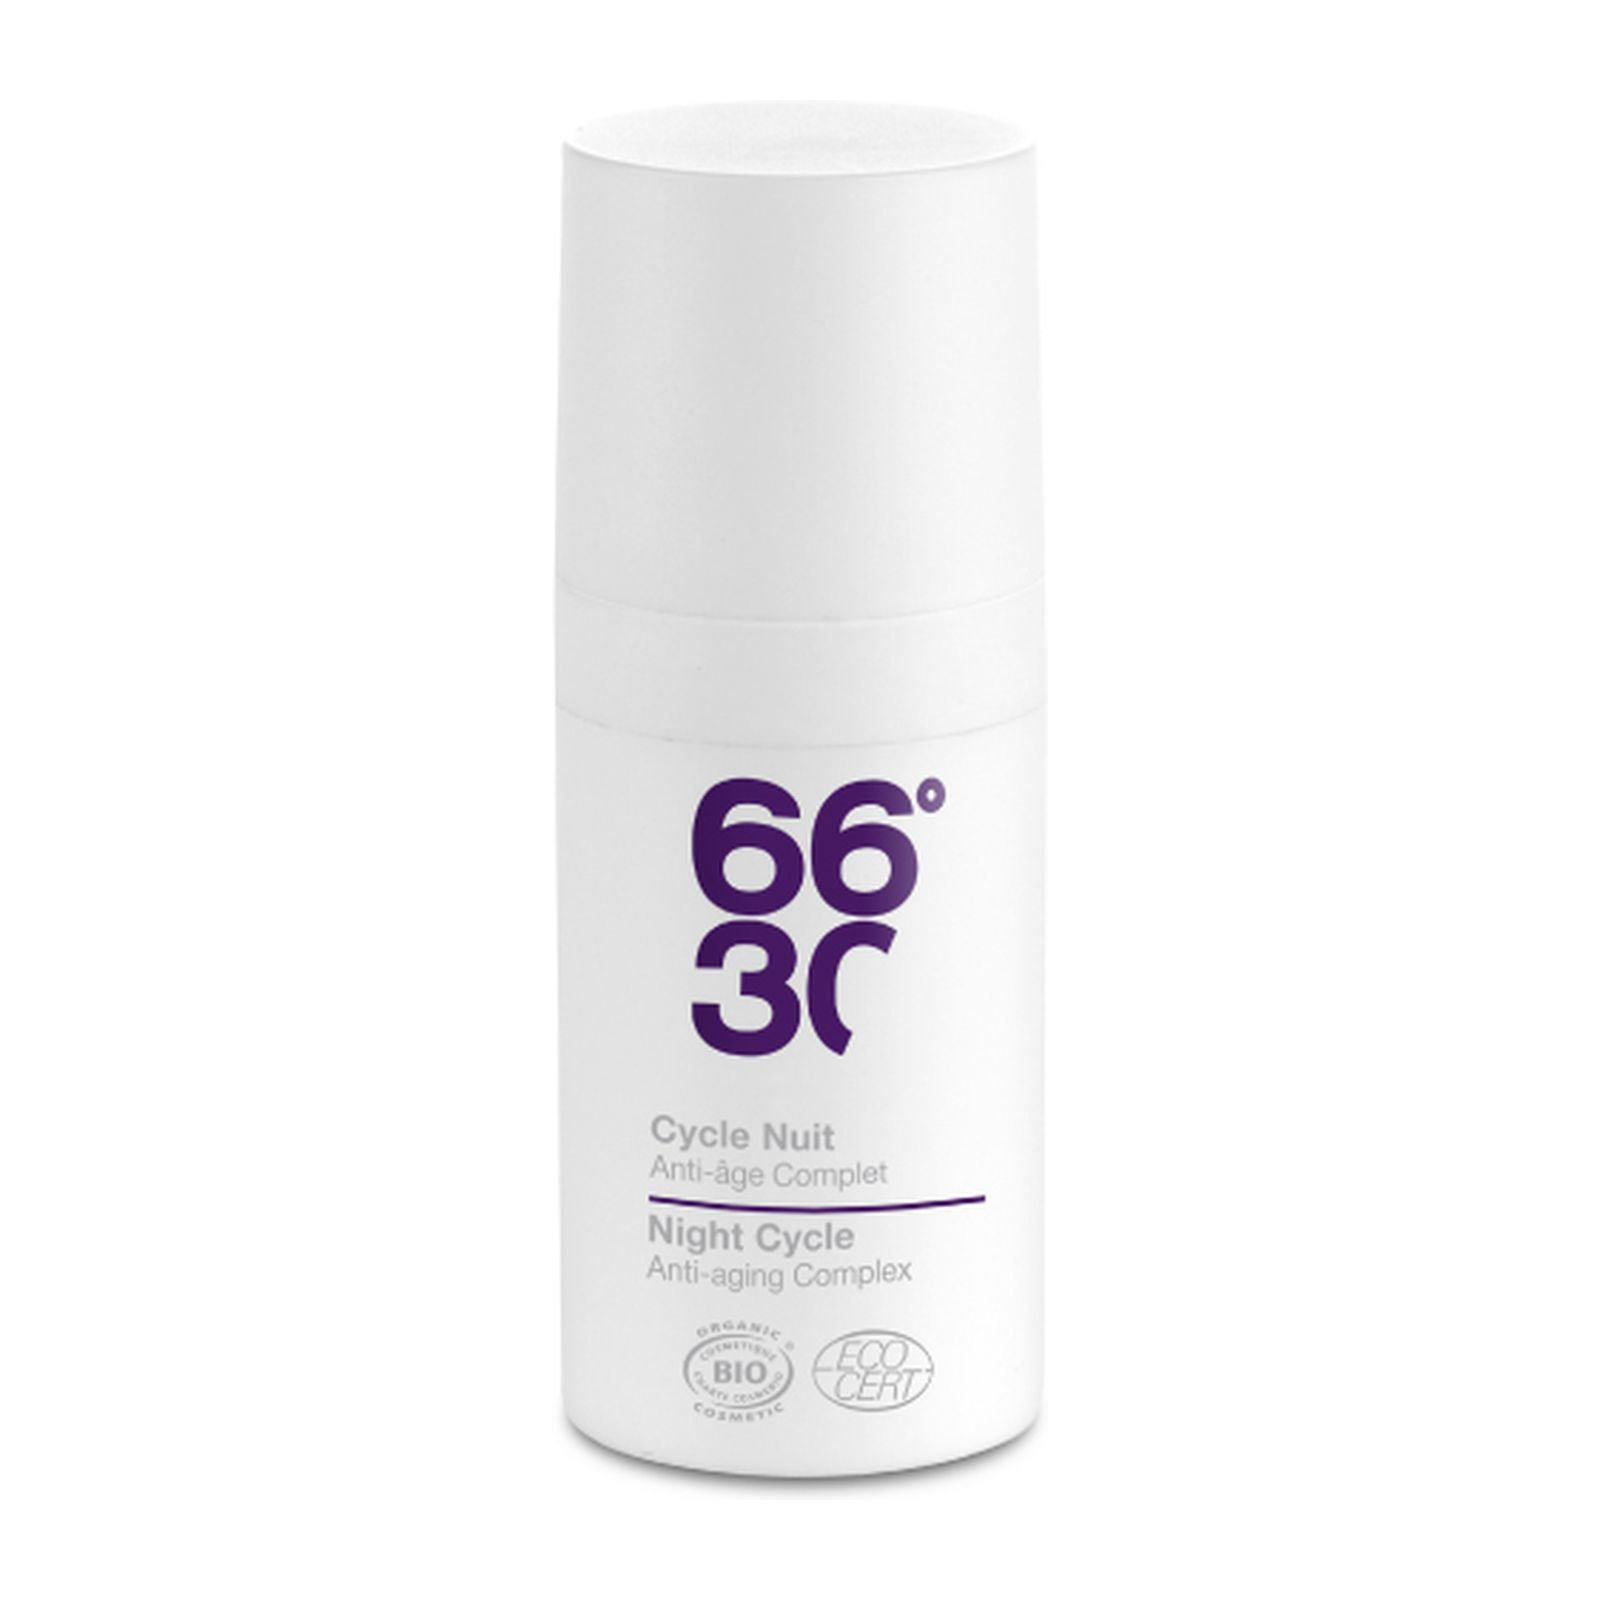 66°30 Cycle Nuit - Anti-âge complet - 15 mL